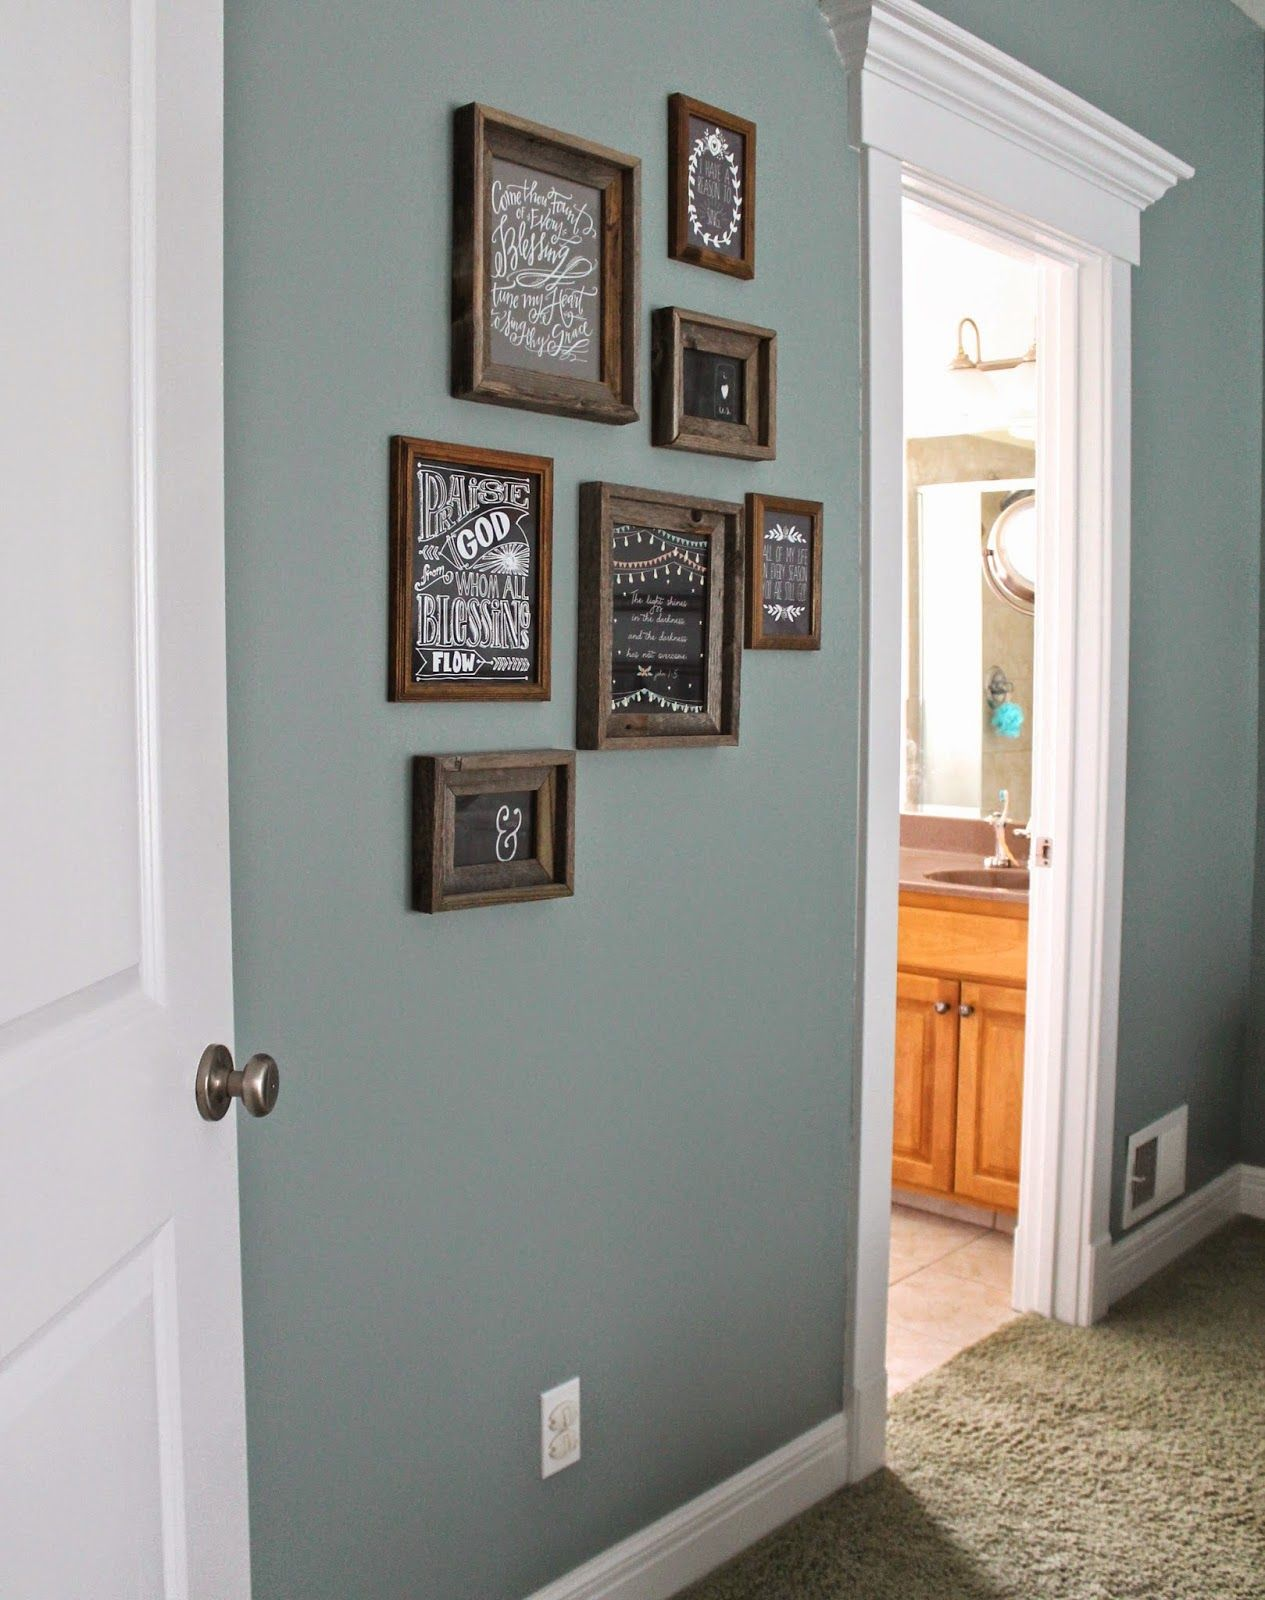 Paint Color Living Room Paint Color Valspar Blue Arrow Dark Rustic Frames Hobby Lobby